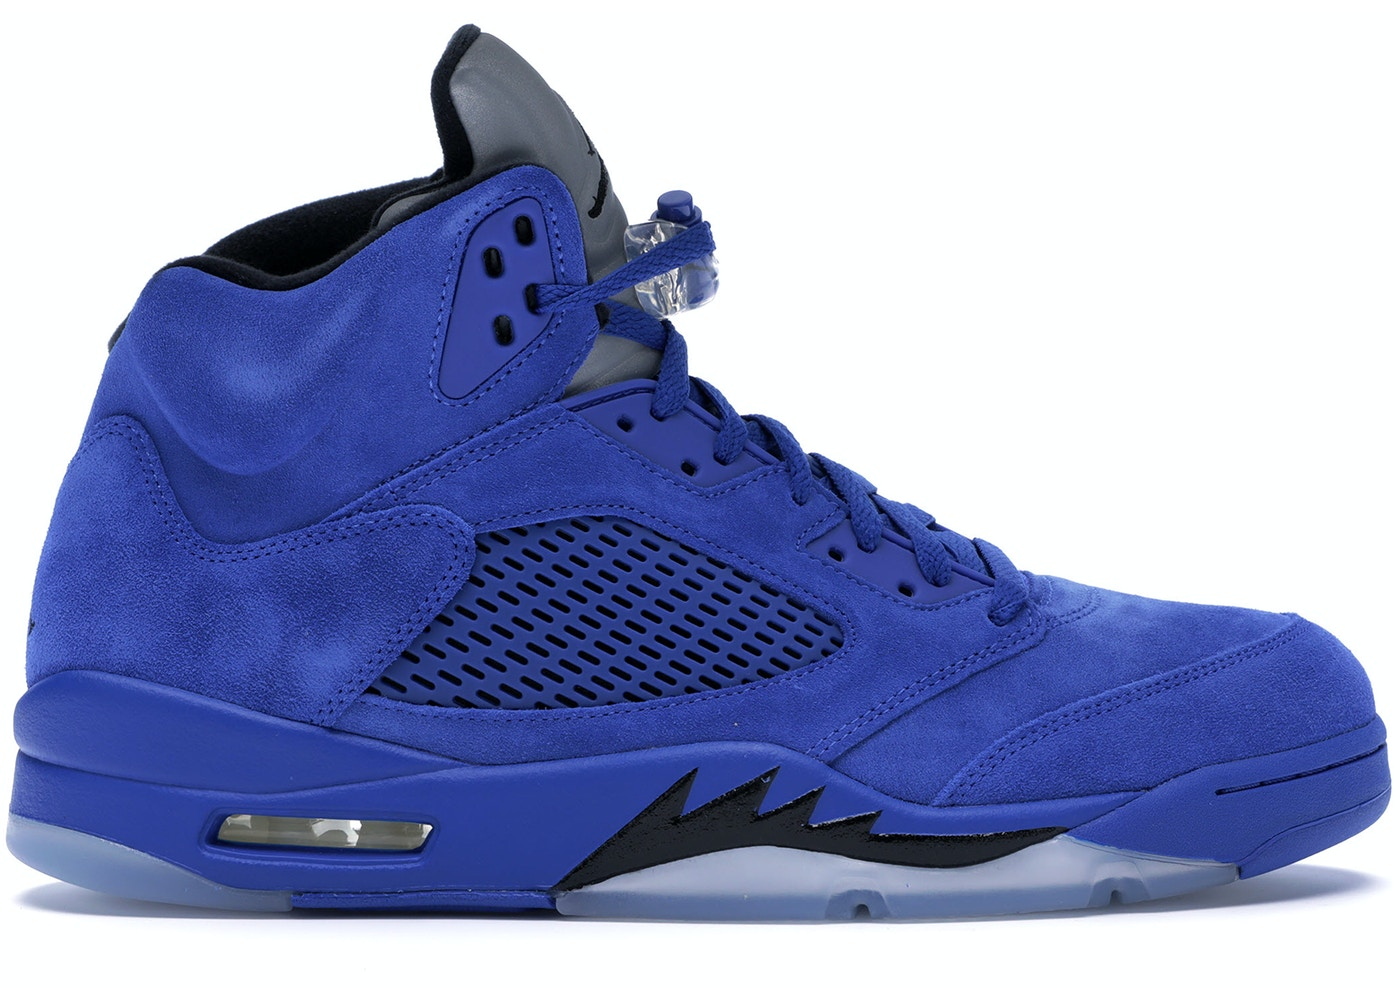 san francisco 52a82 70d5e Jordan 5 Retro Blue Suede